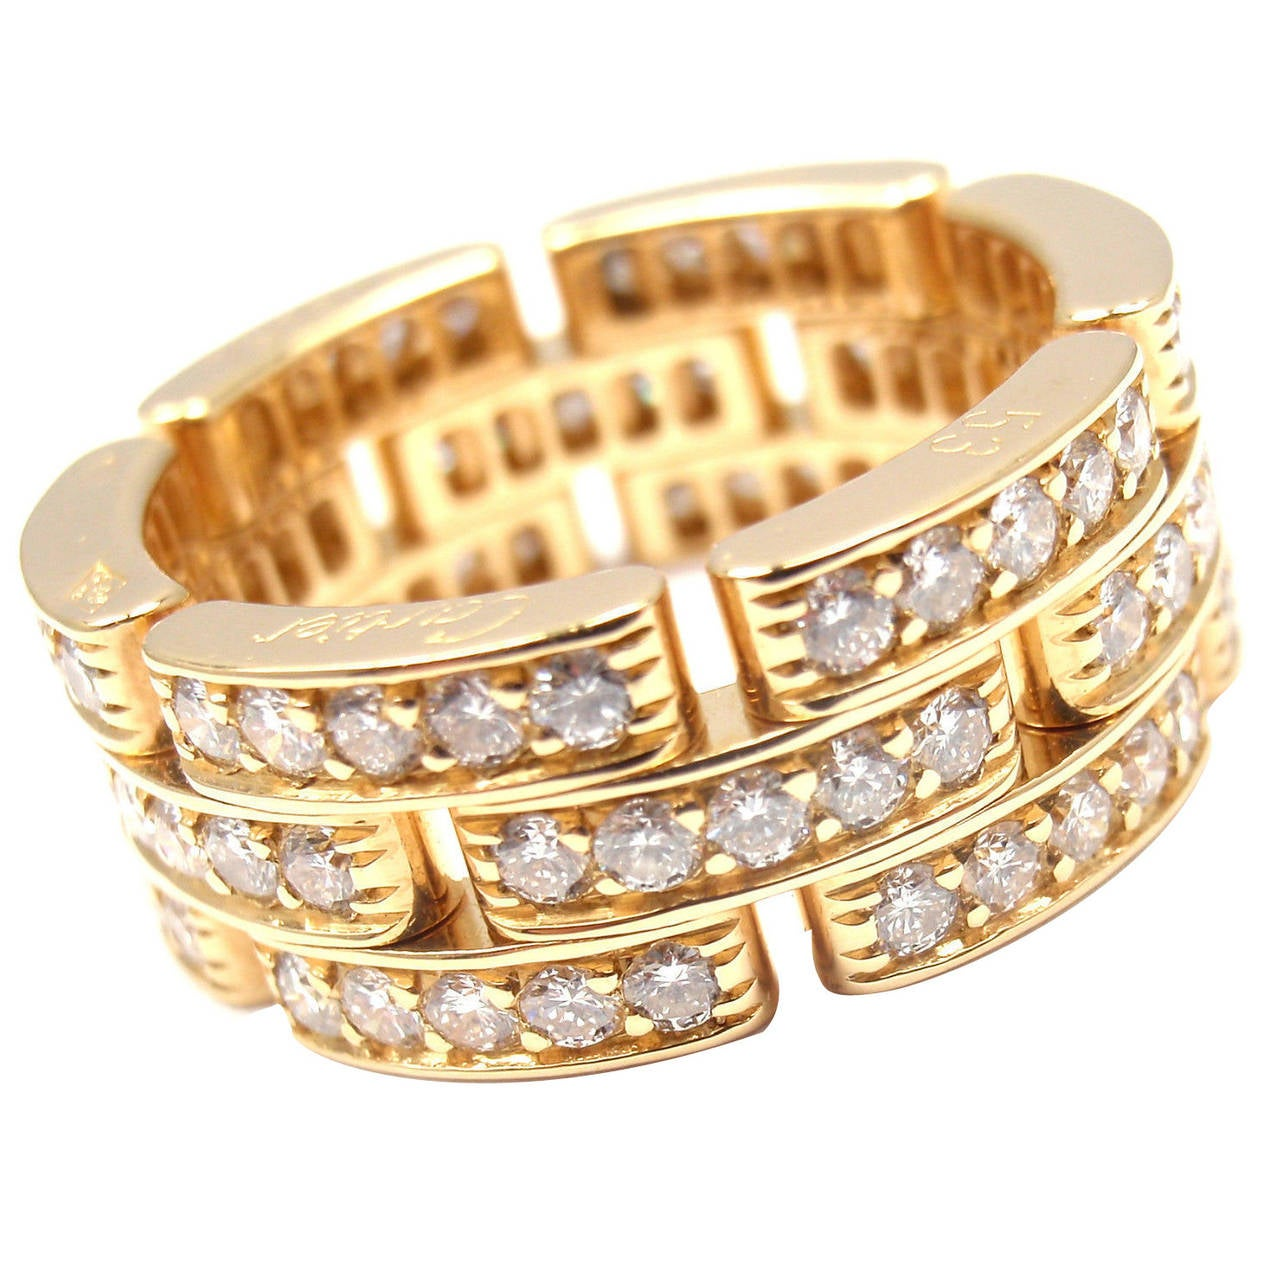 Cartier Maillon Panthere Diamond Gold Eternity Band Ring